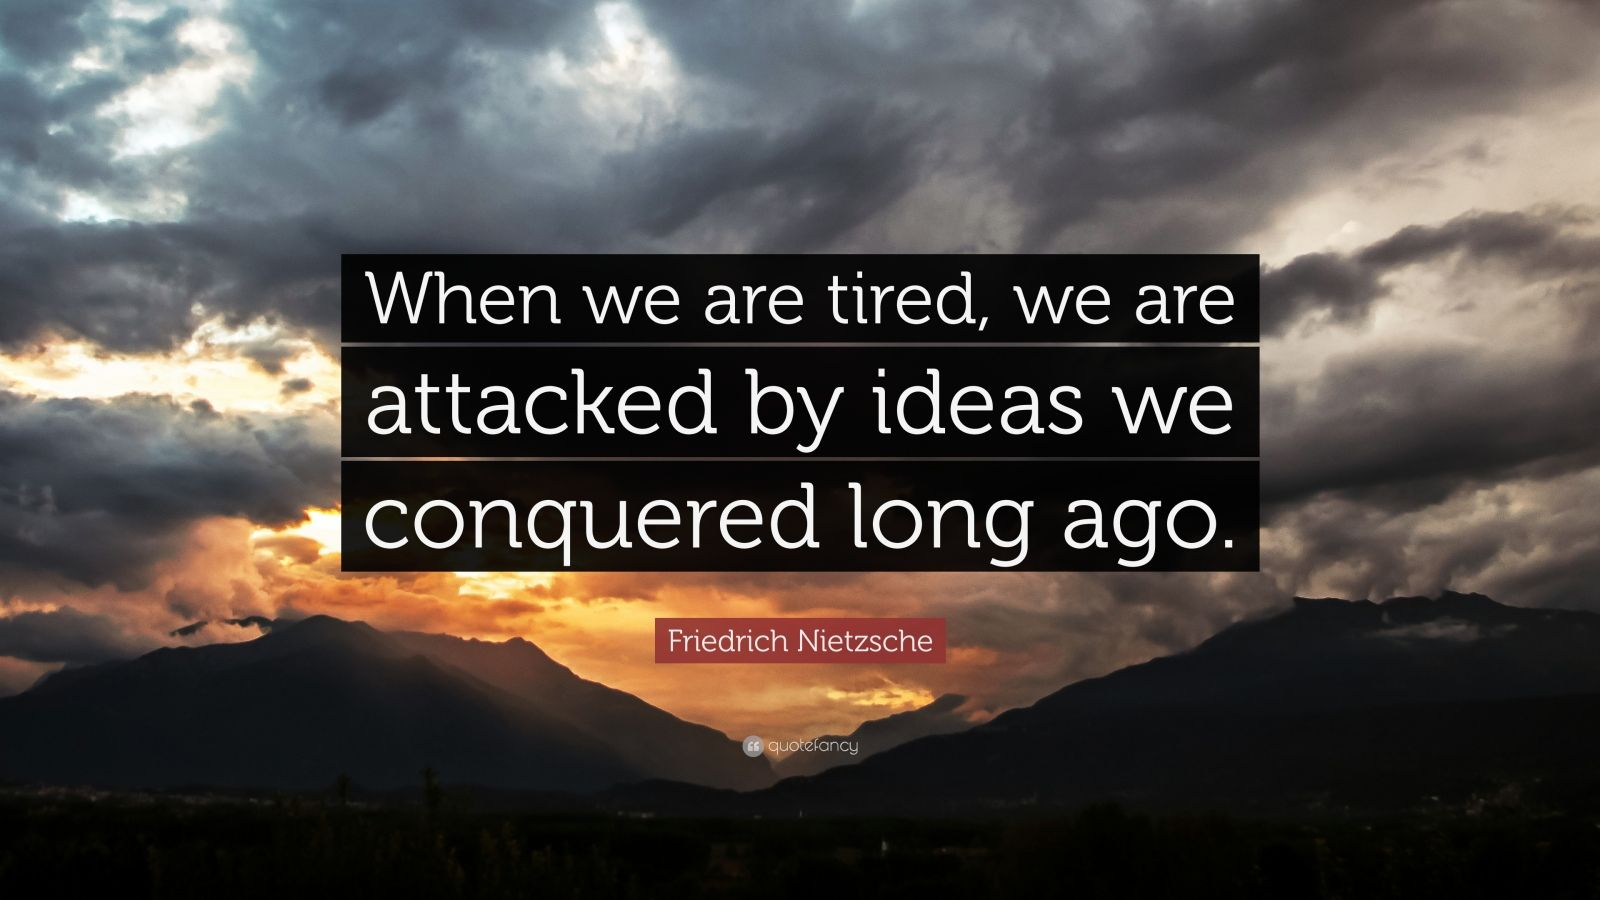 Friedrich Nietzsche Quote When We Are Tired We Are Attacked By